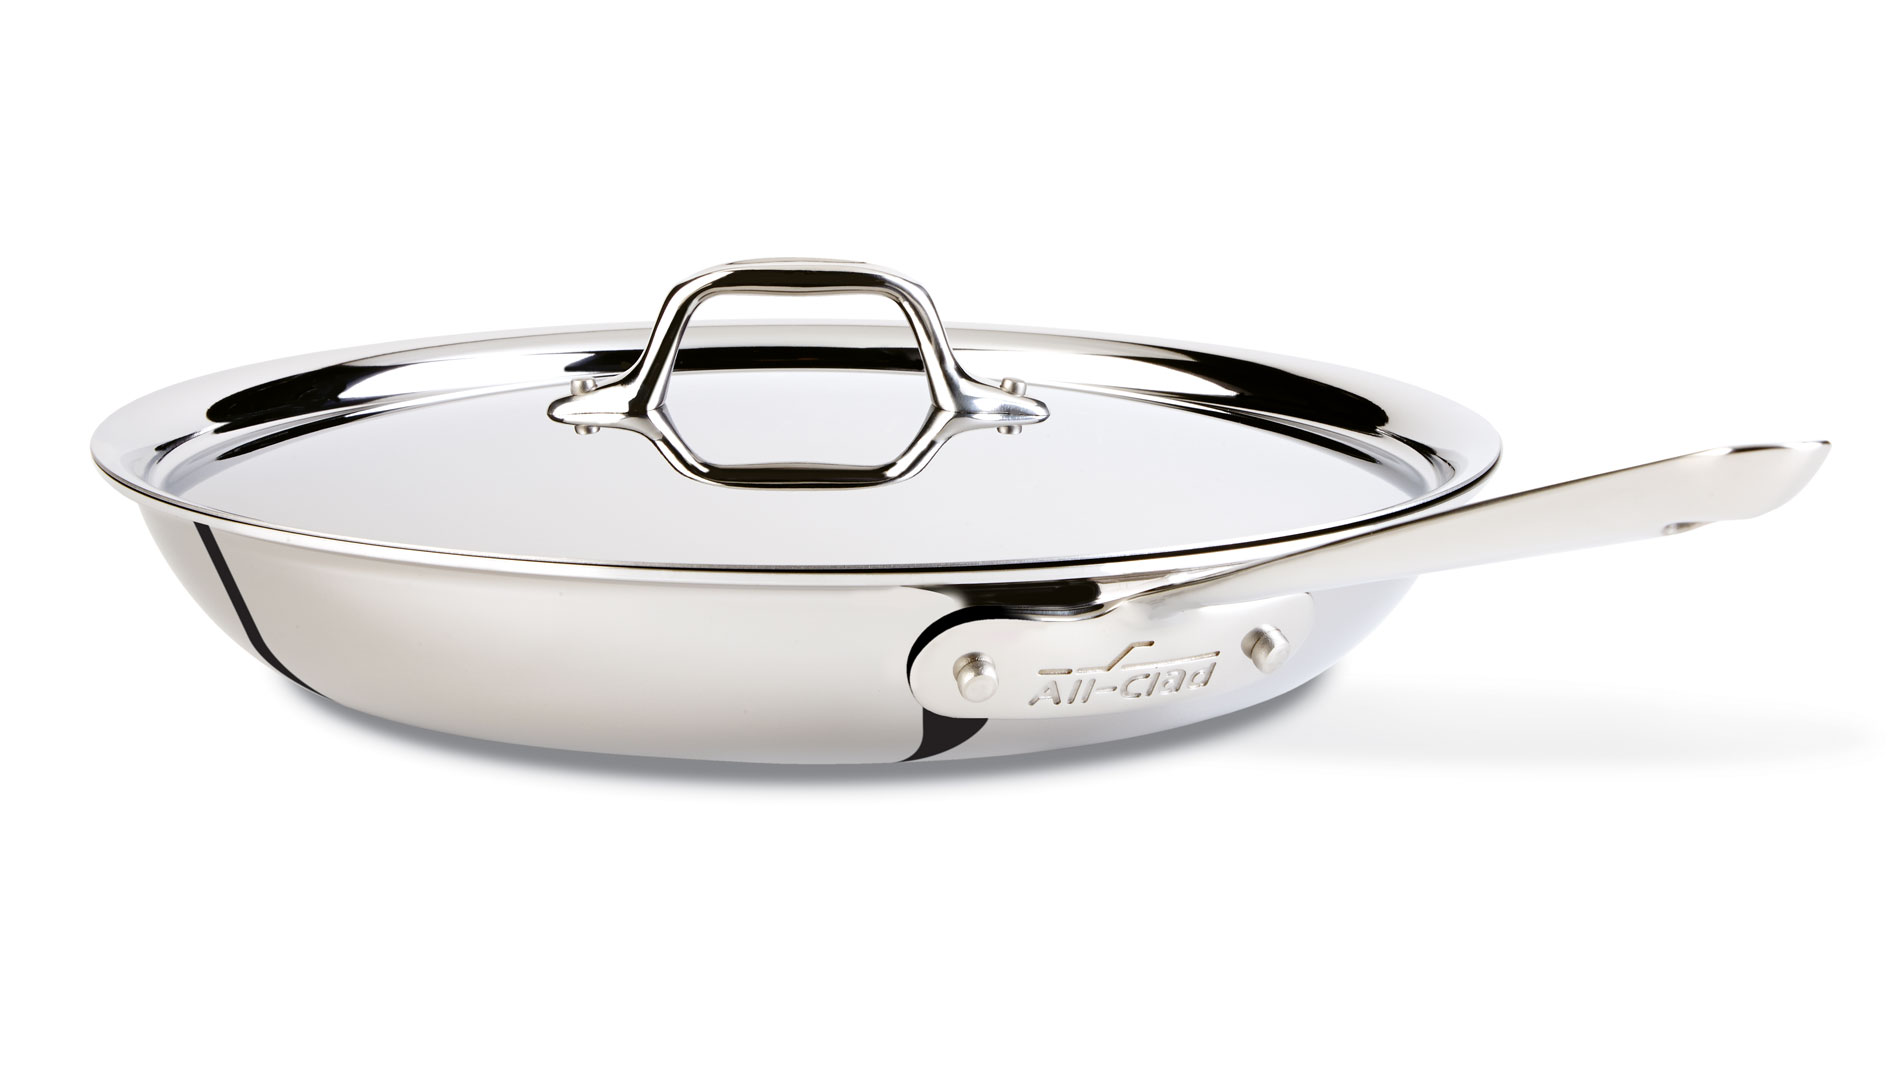 all-clad-stainless-12-inch-covered-fry-pan-favorite-kitchen-tools-FT-MAG0717.jpg